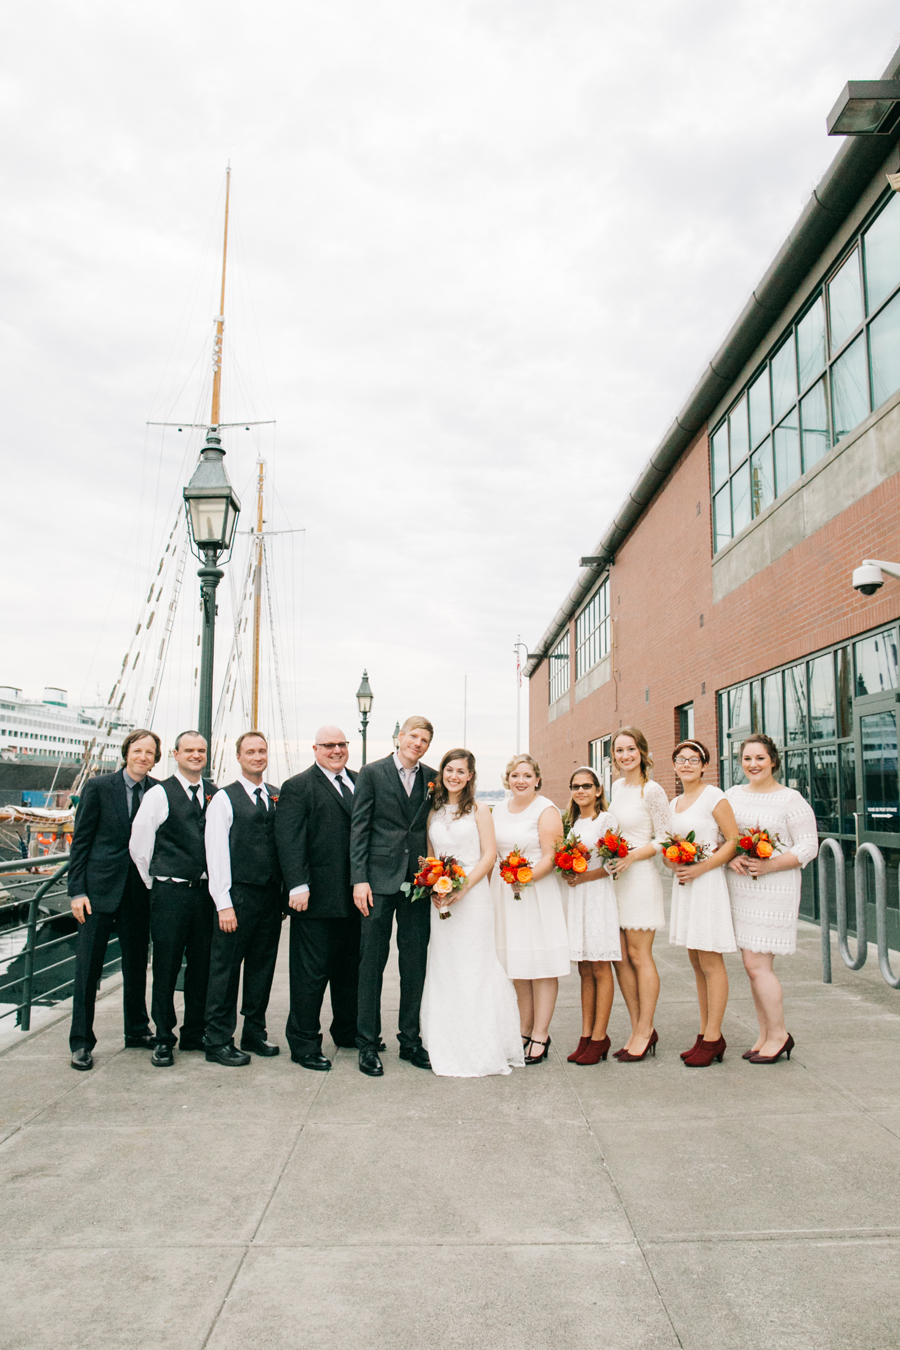 043-bellingham-fairhaven-wedding-photographer-bellingham-ferry-terminal-katheryn-moran-photography.jpg